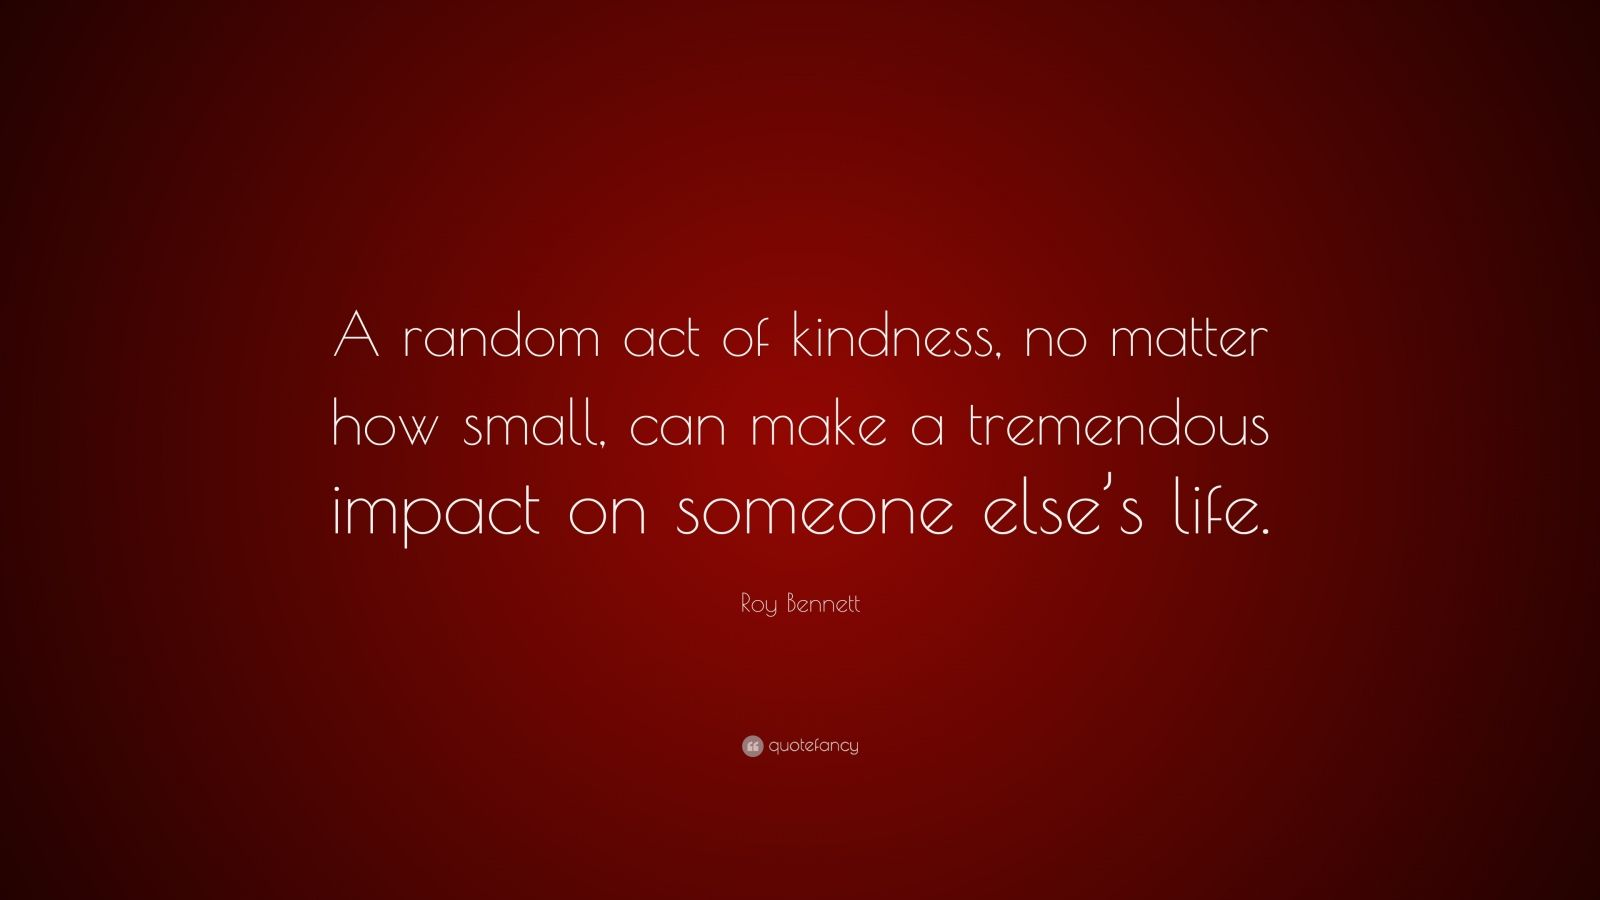 random act of kindness and small